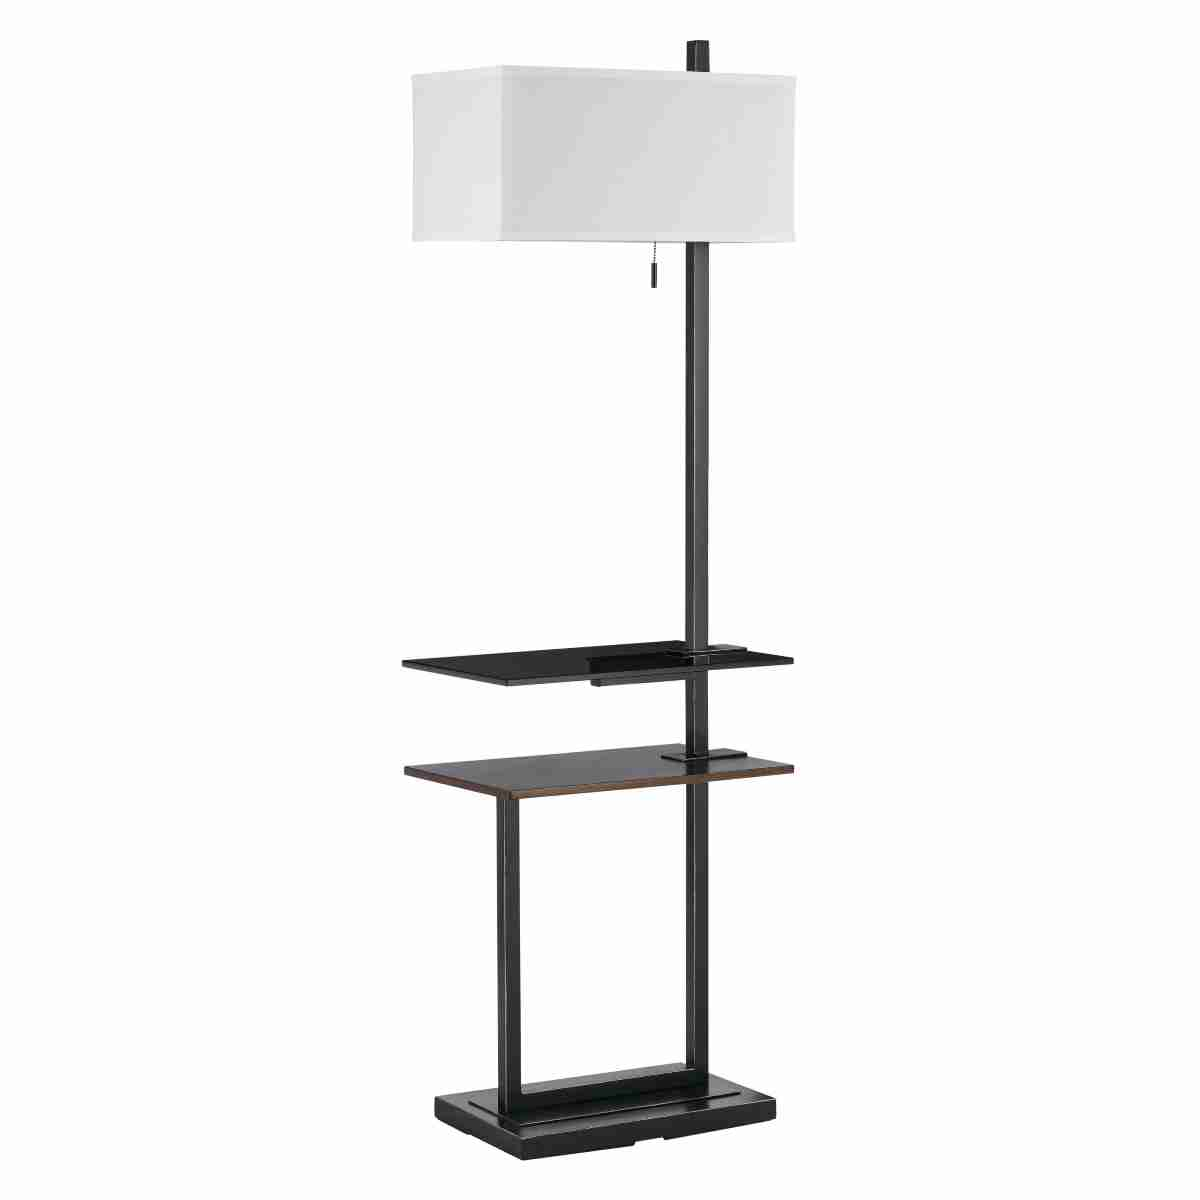 floor lamp with tray table decor ideasdecor ideas. Black Bedroom Furniture Sets. Home Design Ideas